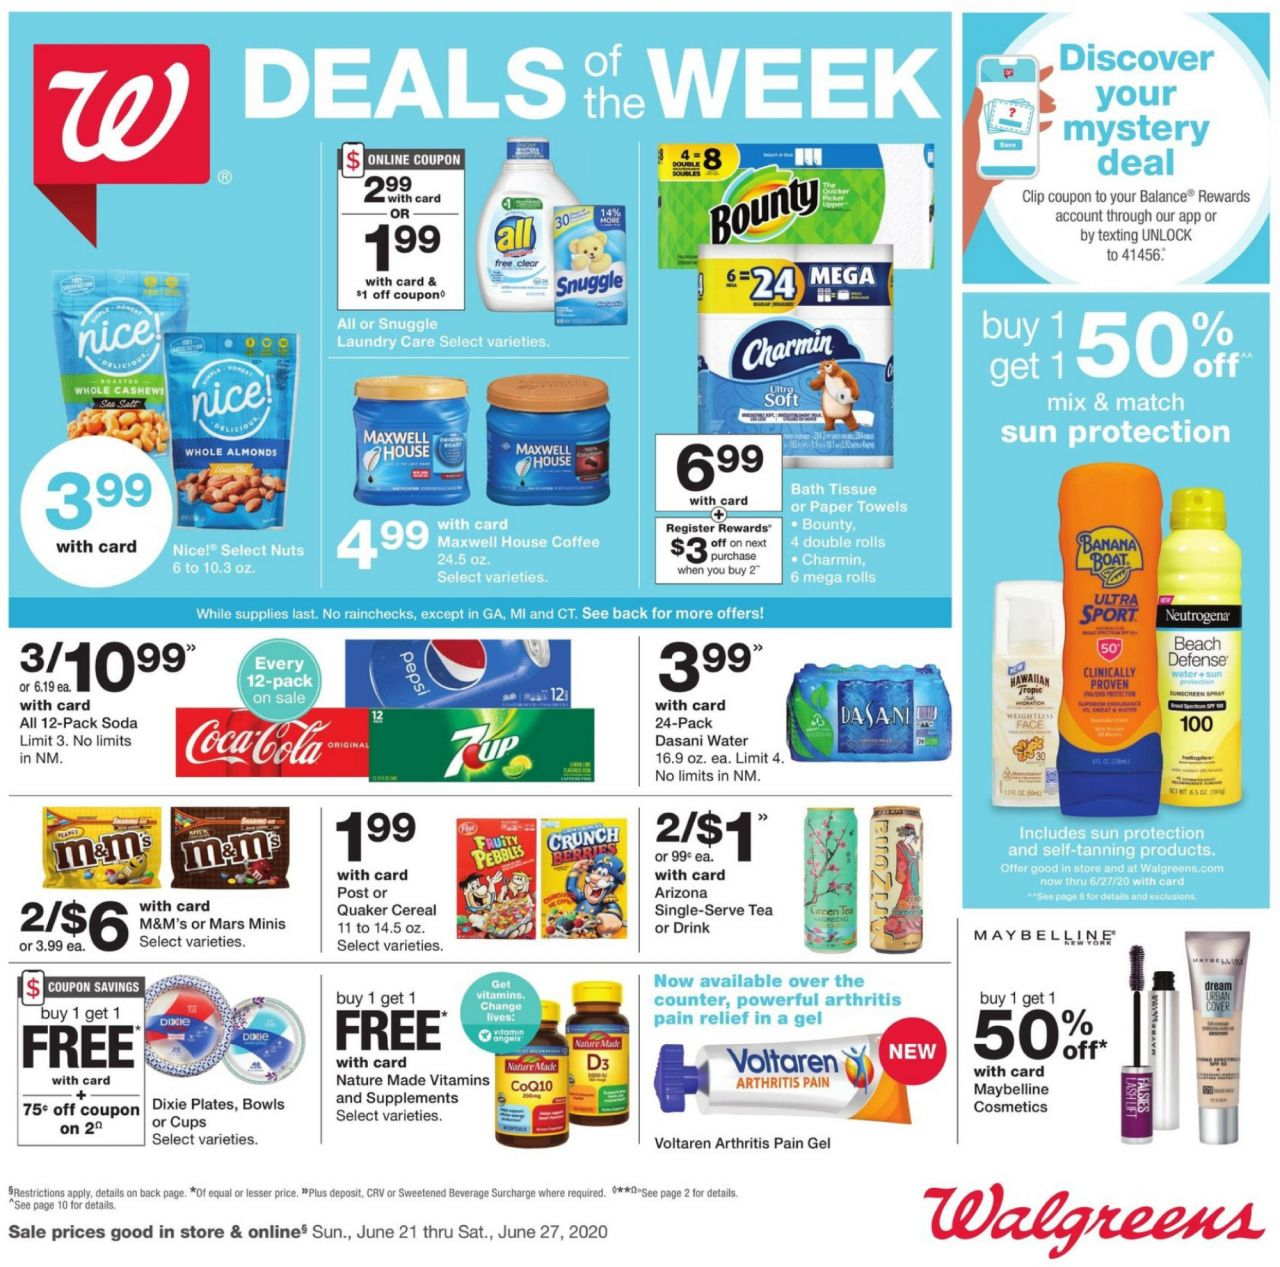 Pin On Weekly Ads Hot Deals